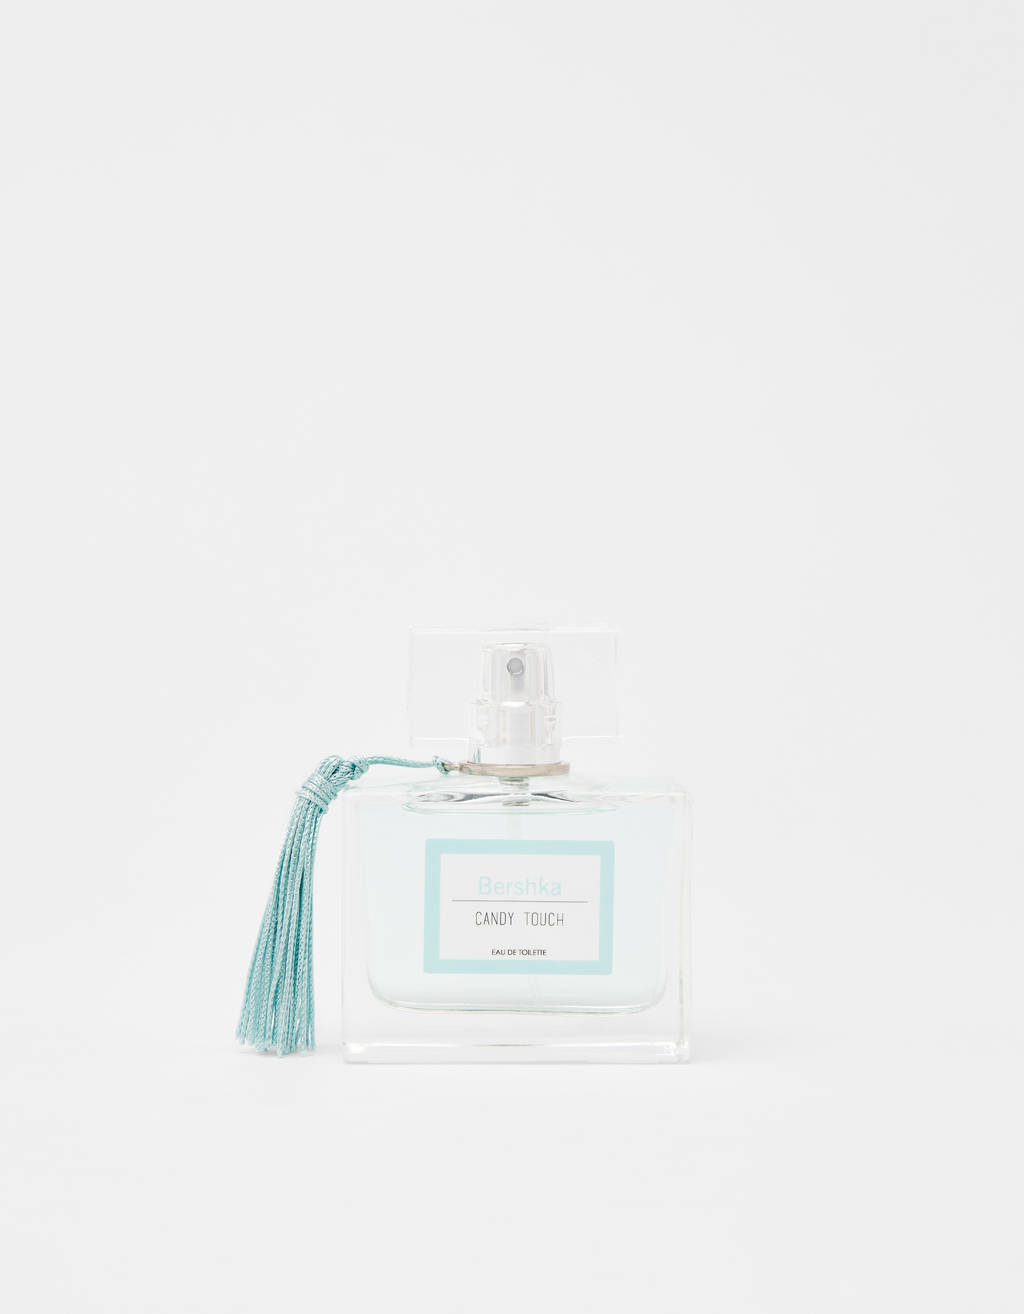 Eau de toilette candy touch 50ml